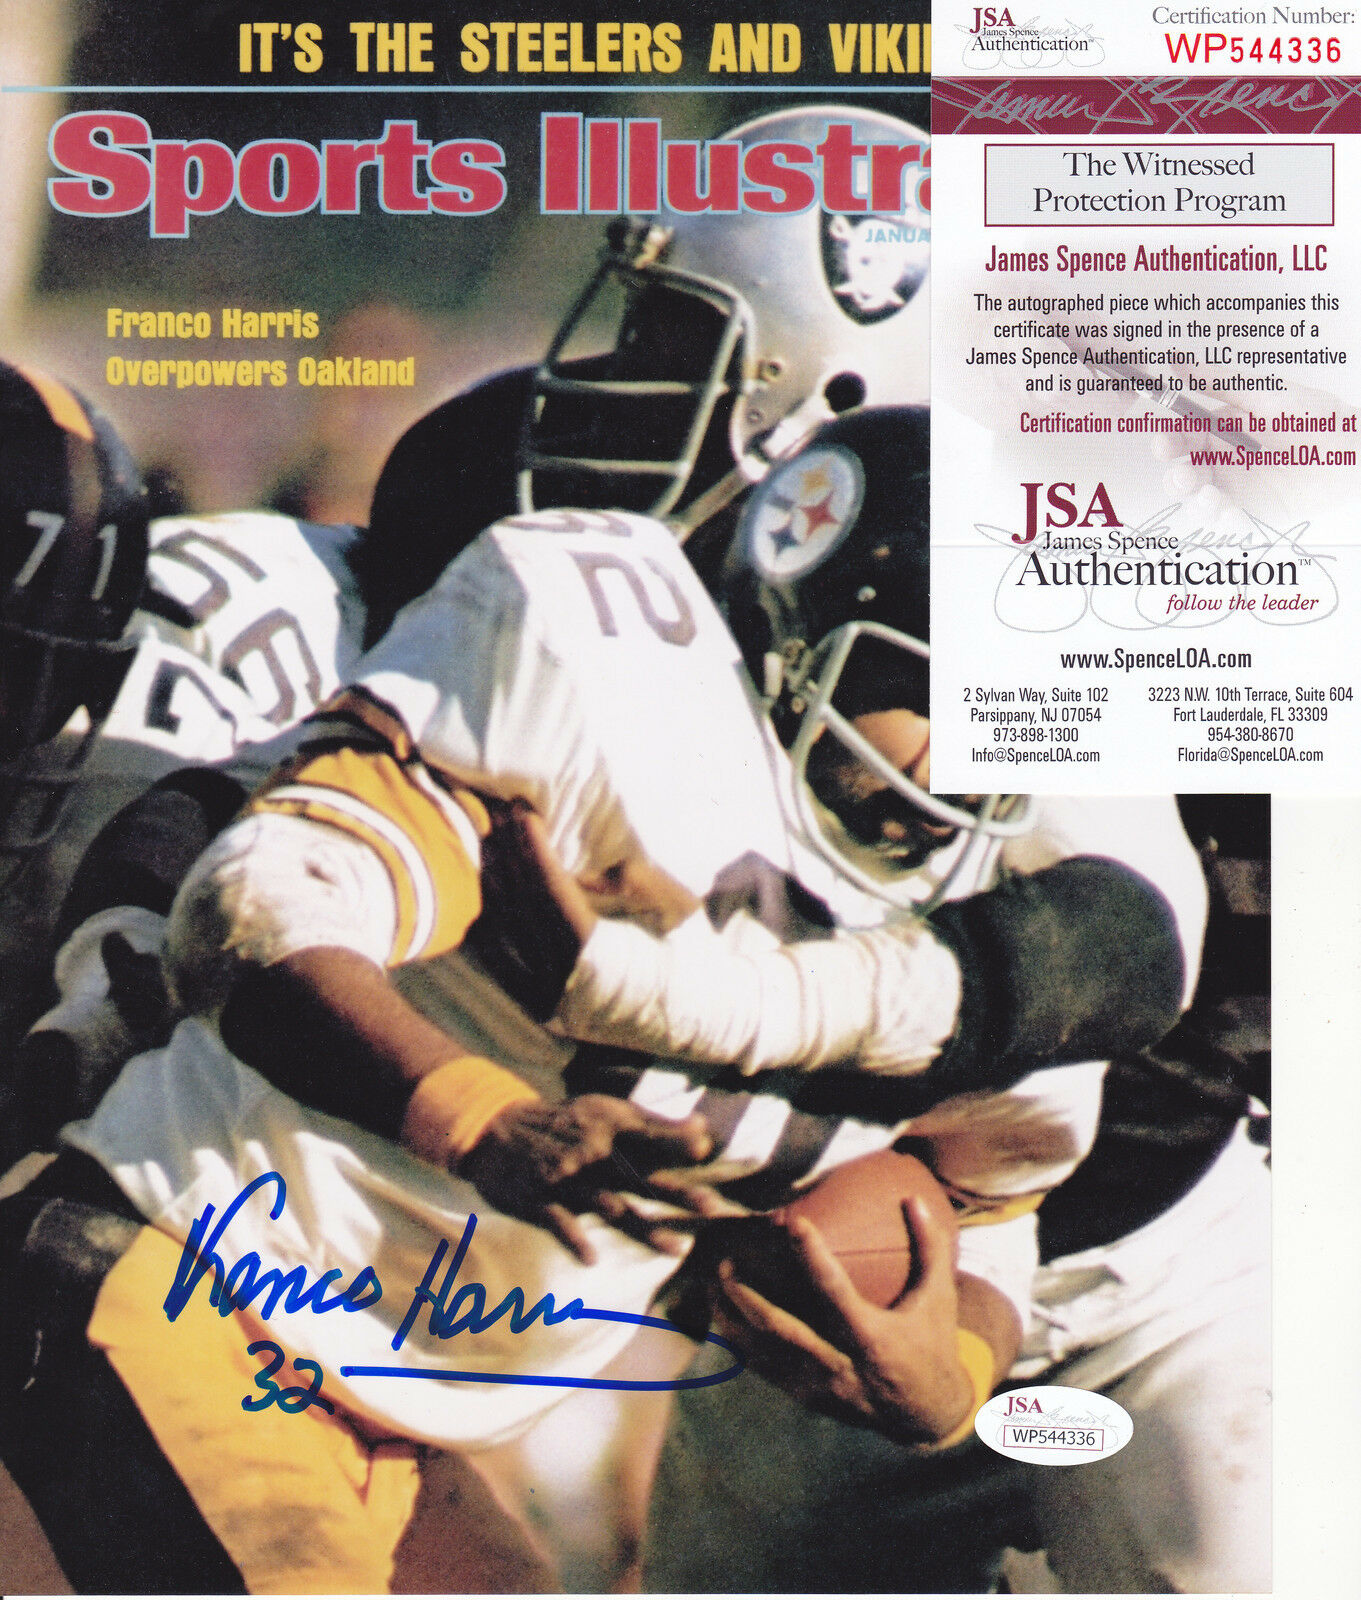 Franco Harris Pittsburgh Steelers JSA Authen Sports Illustrated Firmada